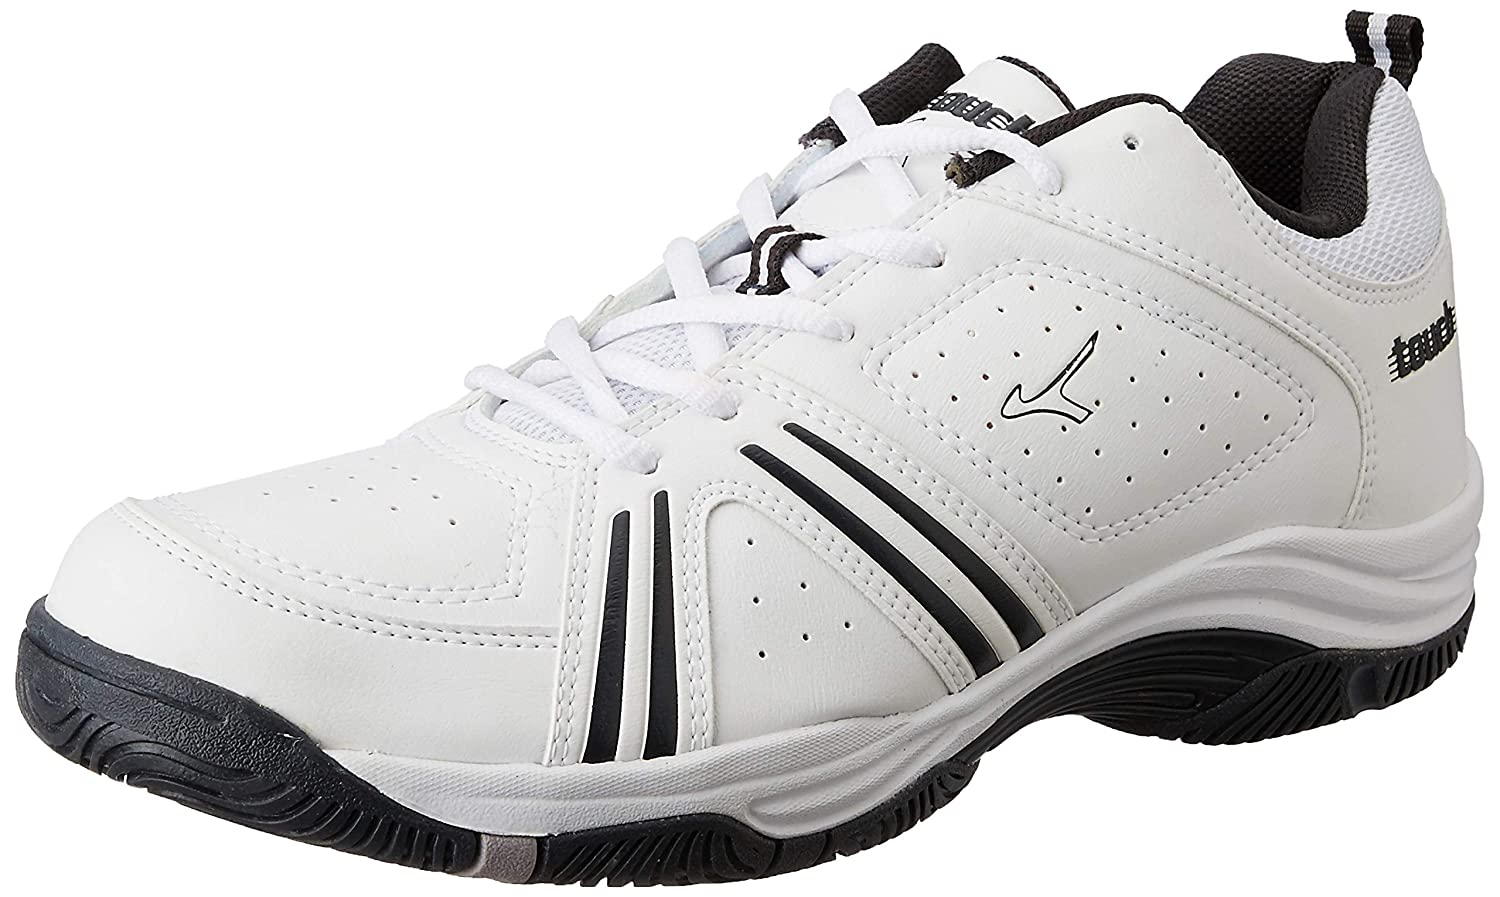 Touch 17-770 Running Shoes at Amazon